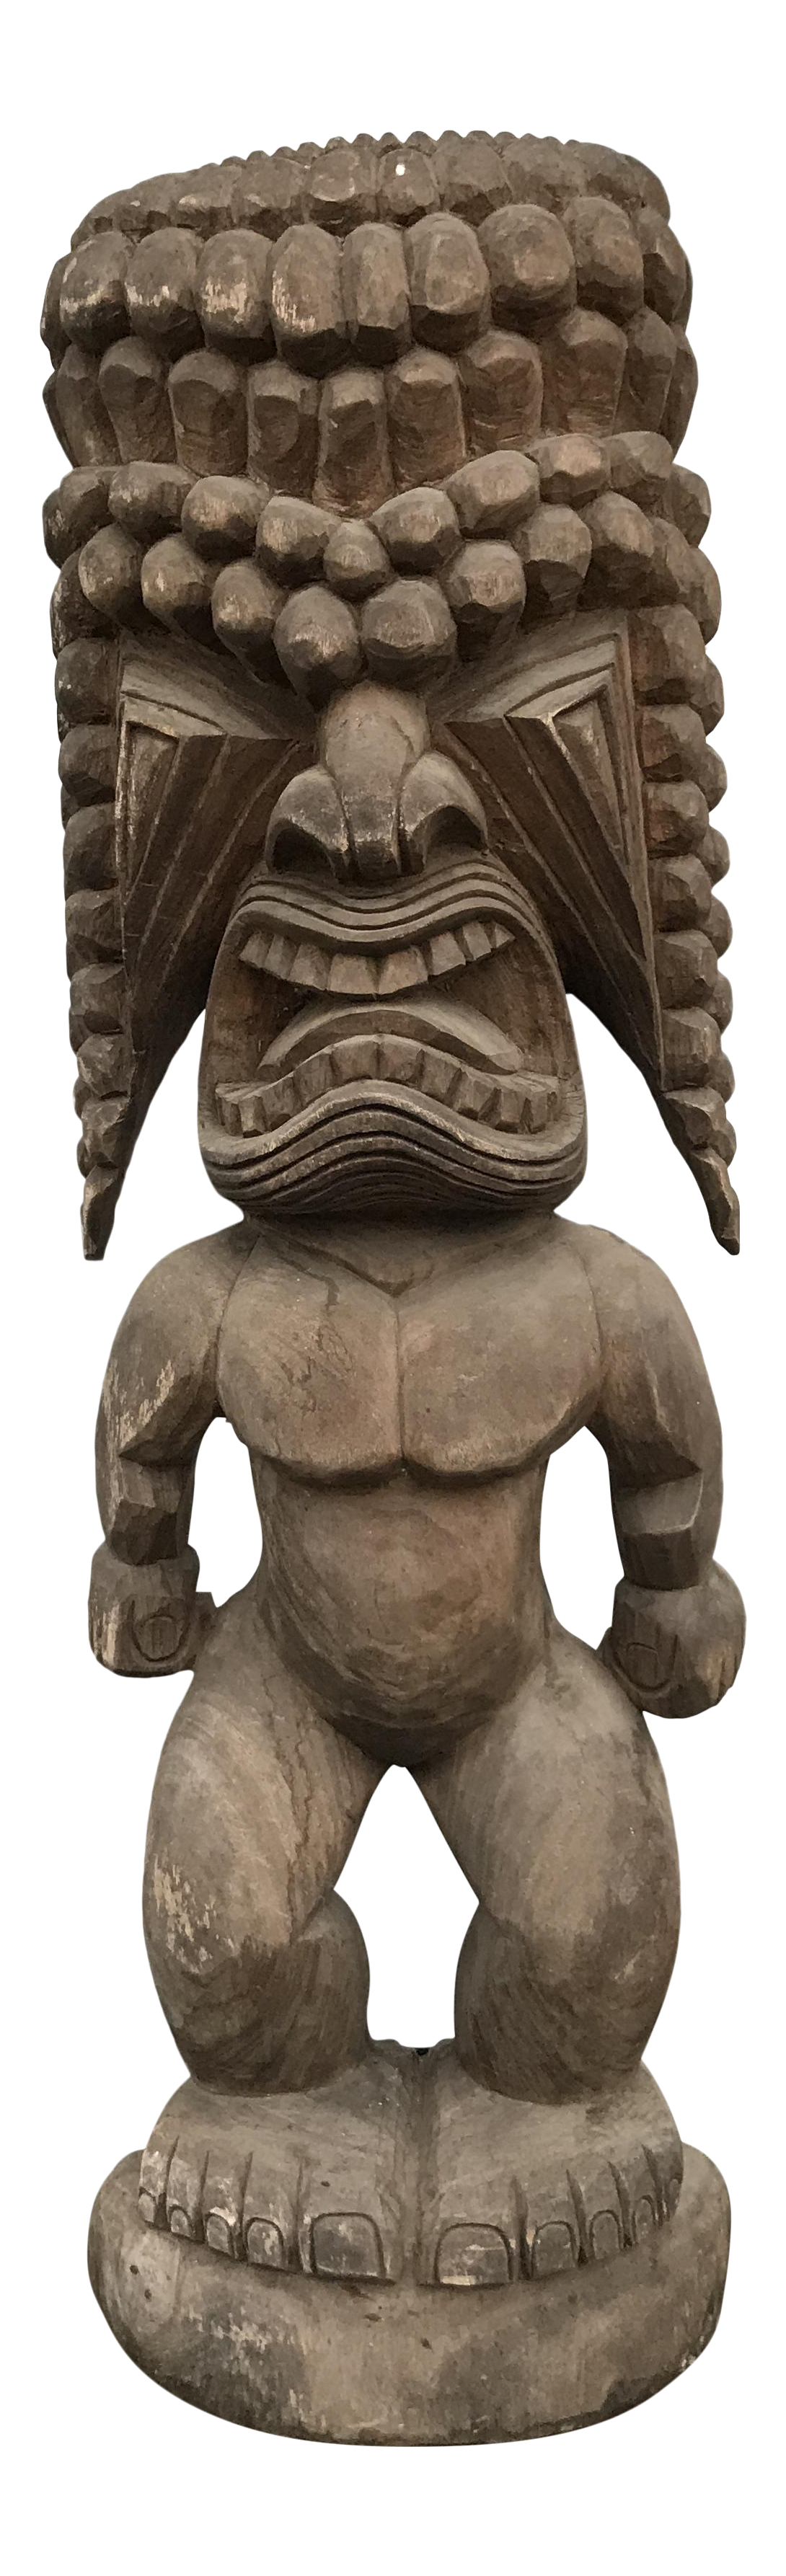 Png pic of flat tiki statue. Monumental carved totem chairish